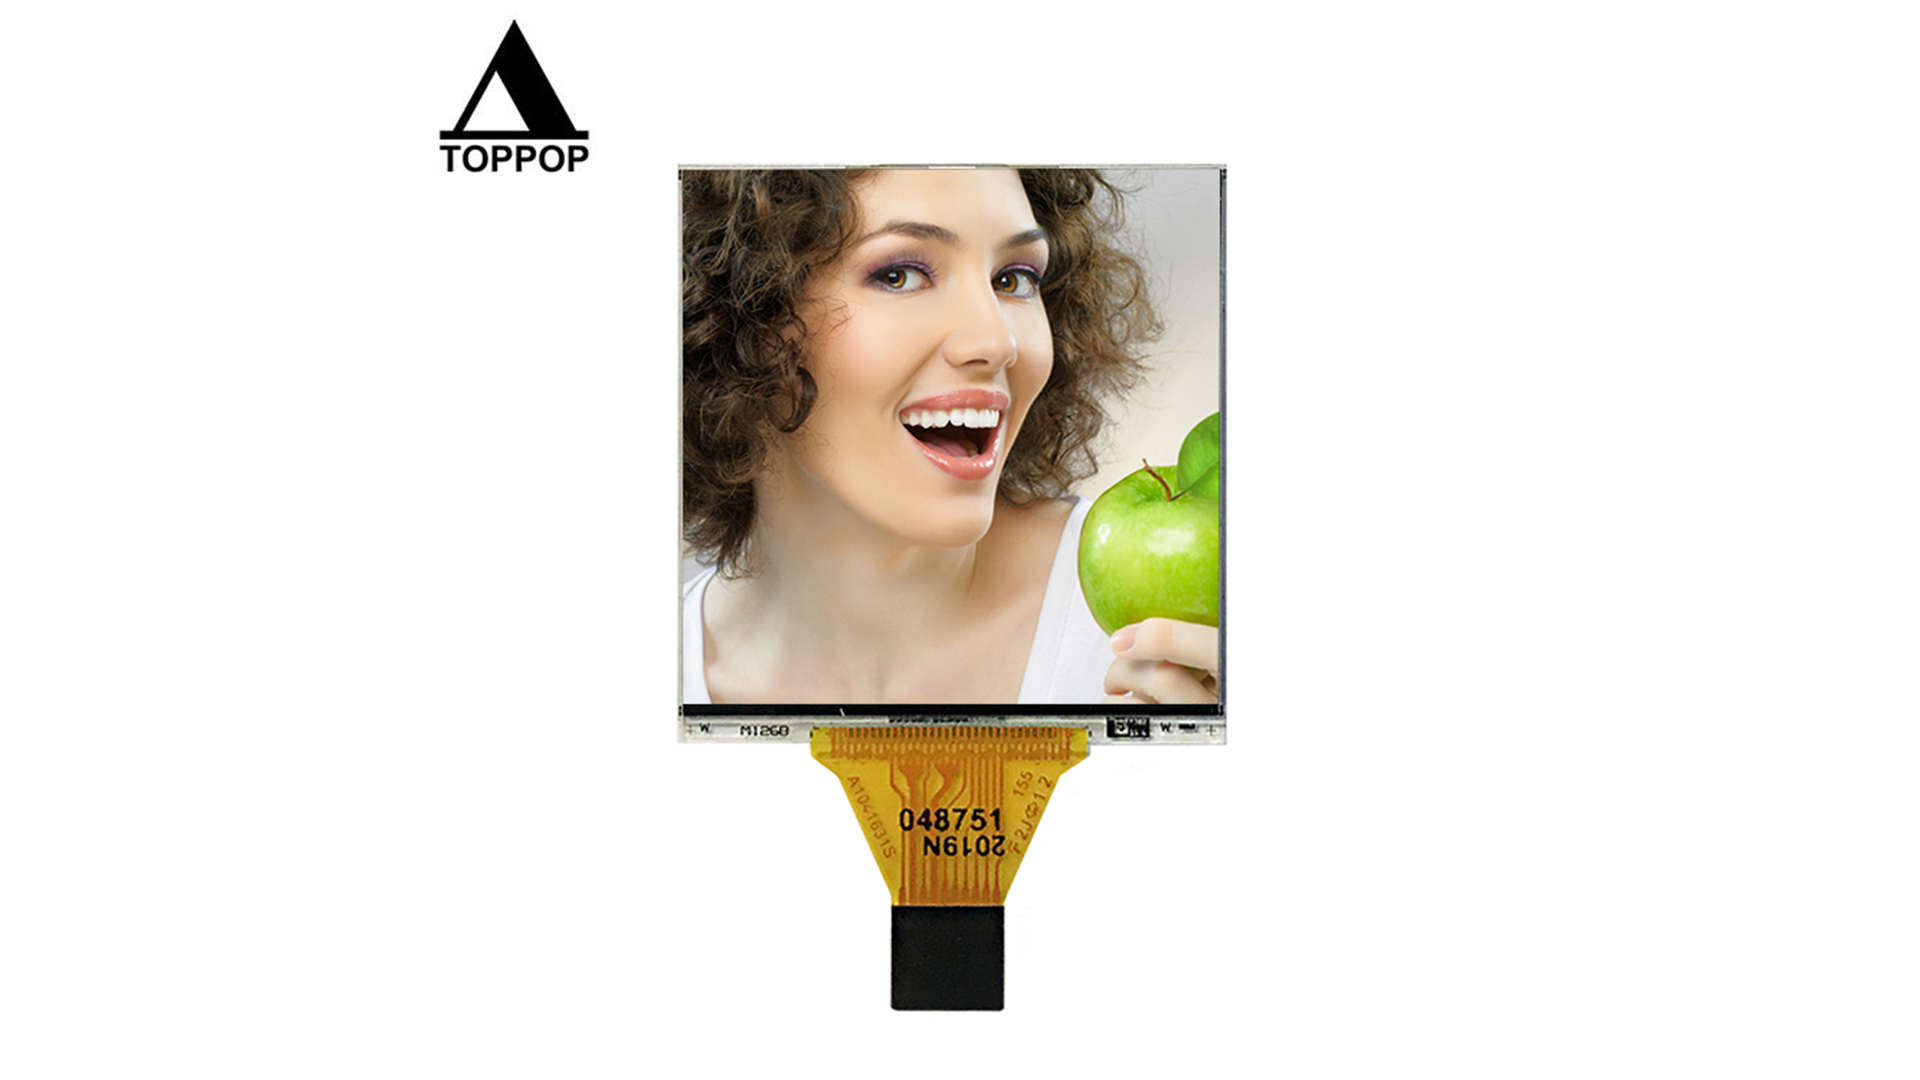 Small IPS lcd 1.28 inch oled lcd module 176*176 Square True RGB Color OLED Display TFT LCD Module For Smart Watch Screen Panel 10 Pin Plug in flexible FPC toppoplcd